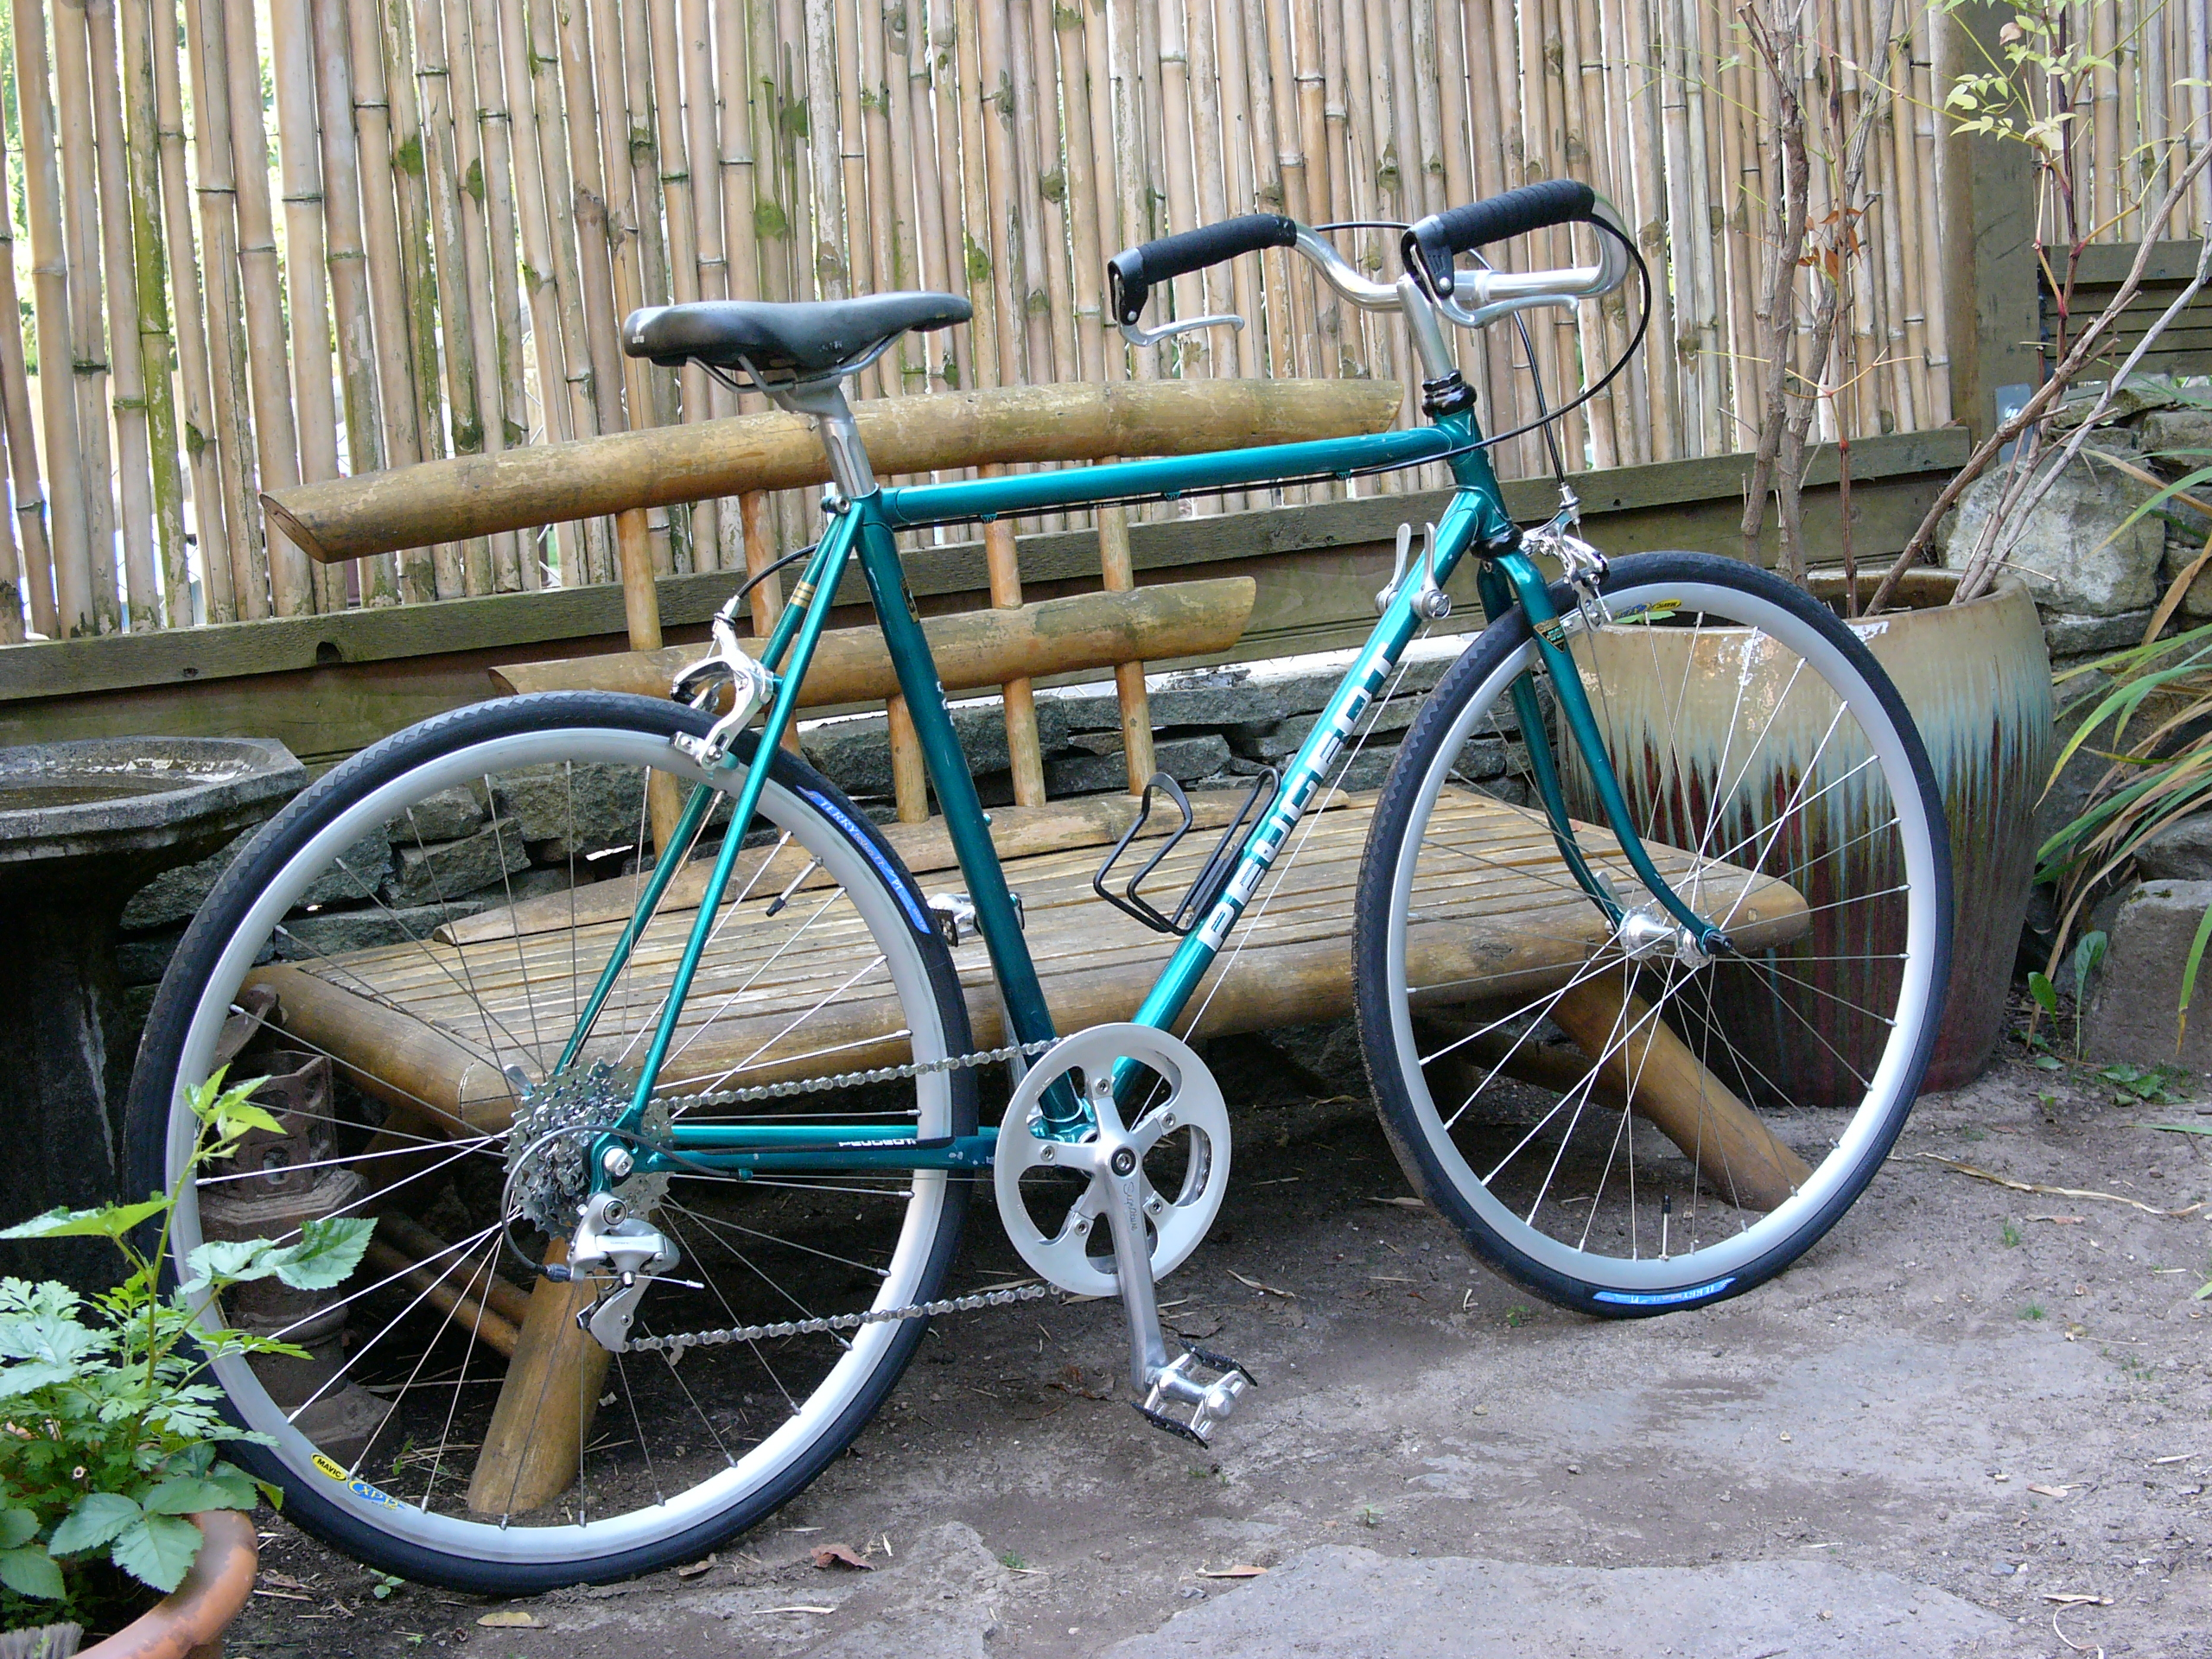 1980 S Peugeot 650c Conversion Restoring Vintage Bicycles From The Hand Built Era